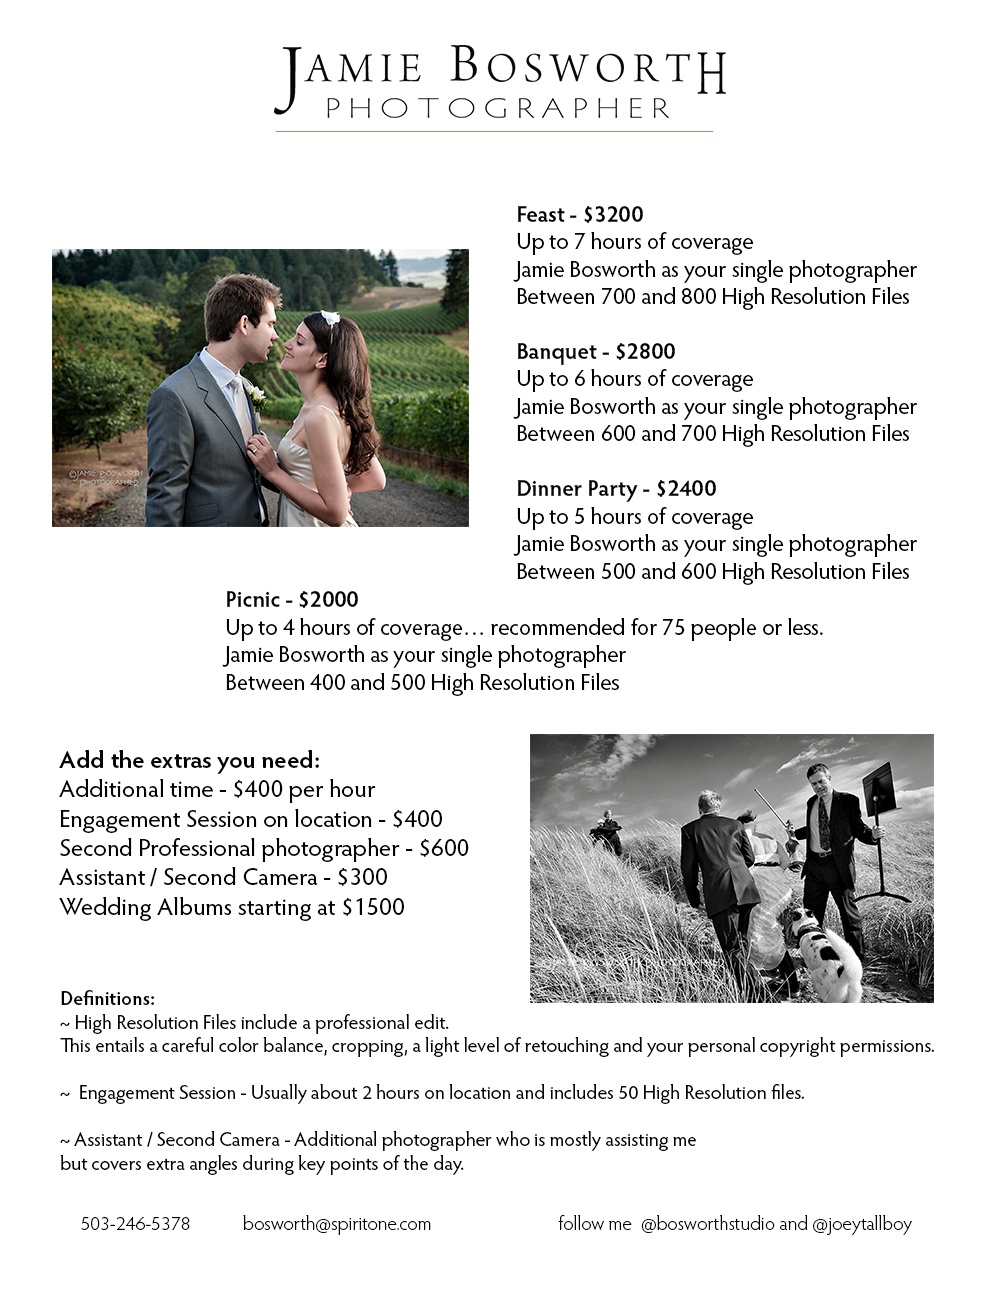 Wedding-Pricing-2016-Jamie-Bosworth-Photographer